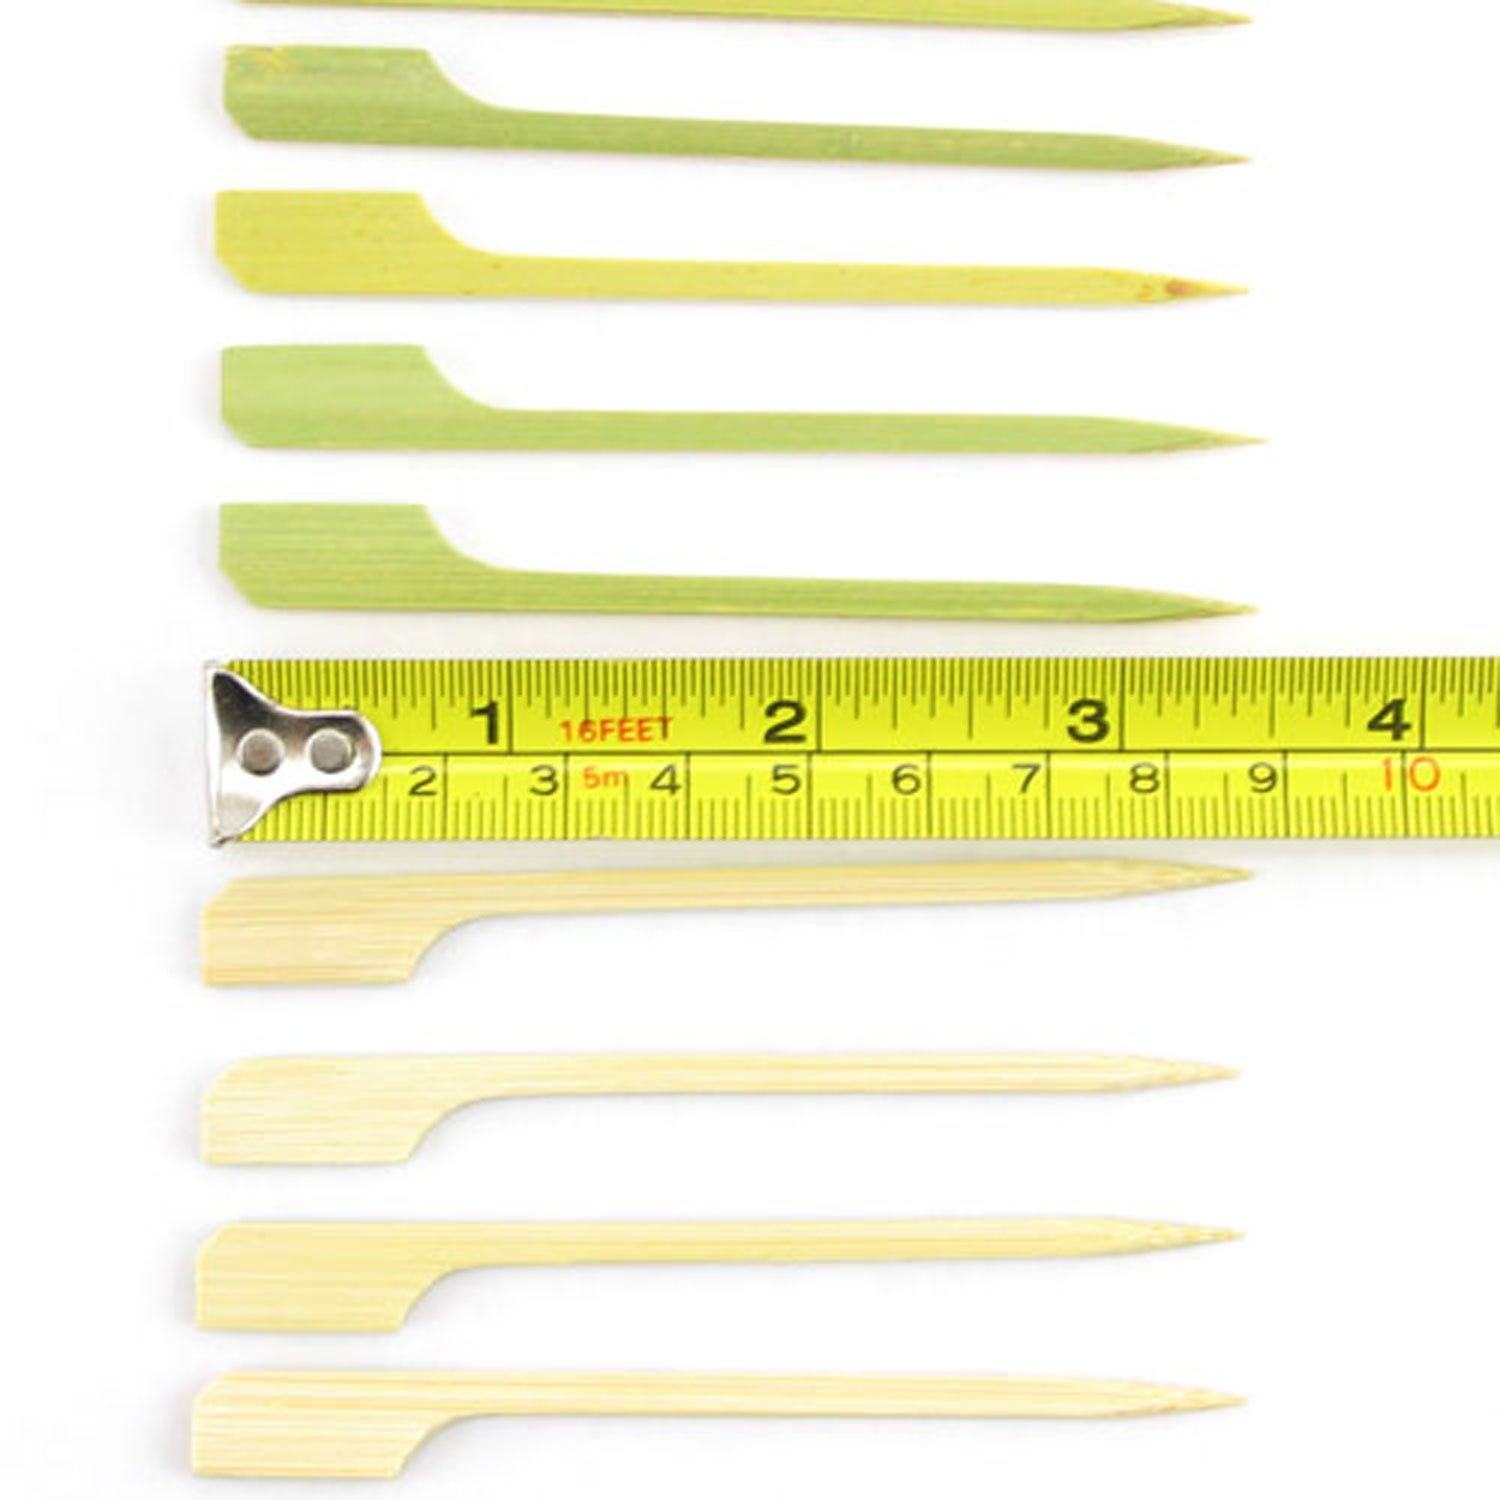 BambooMN 3.5'' Bamboo Paddle Cocktail Fruit Sandwich Food Picks Skewers for Catered Events, Holiday's, Restaurants or Buffets Party Supplies, 1000 Pieces